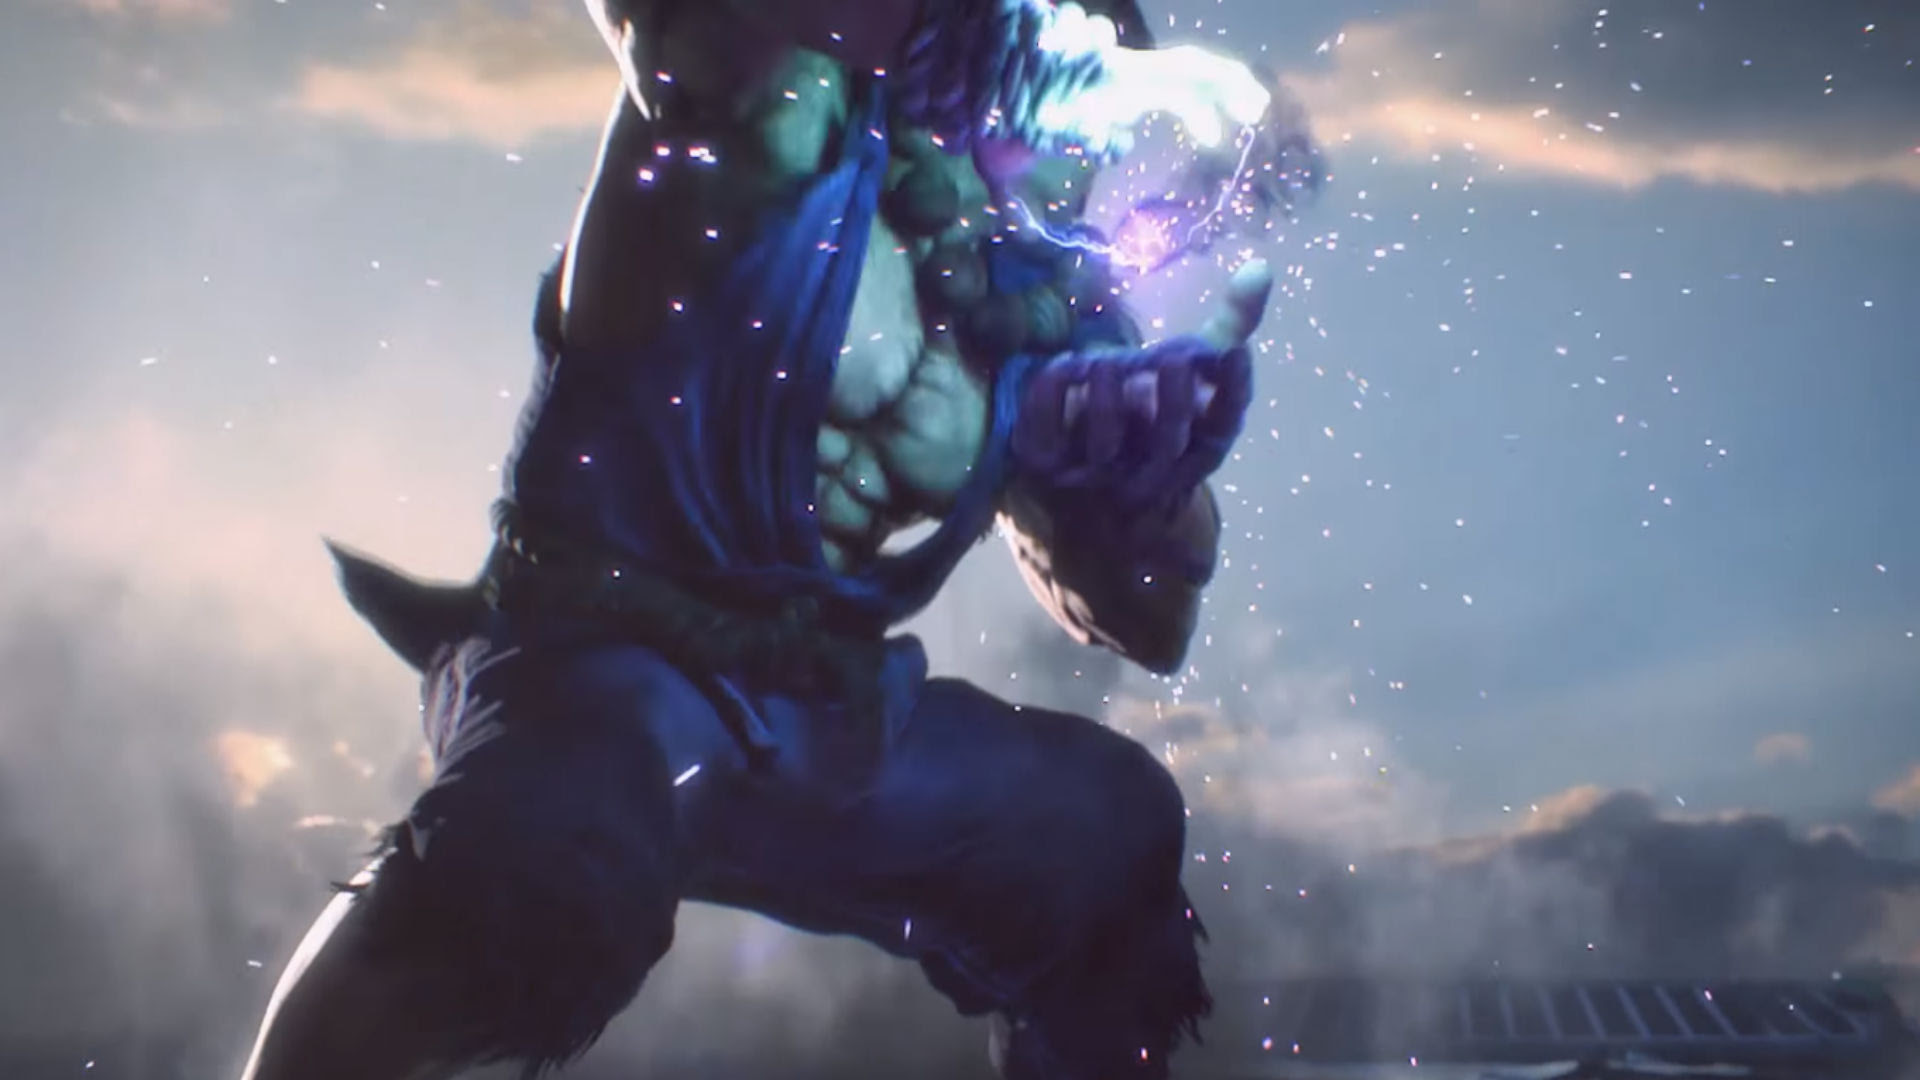 Check out Tekken 7's opening movie screenshot